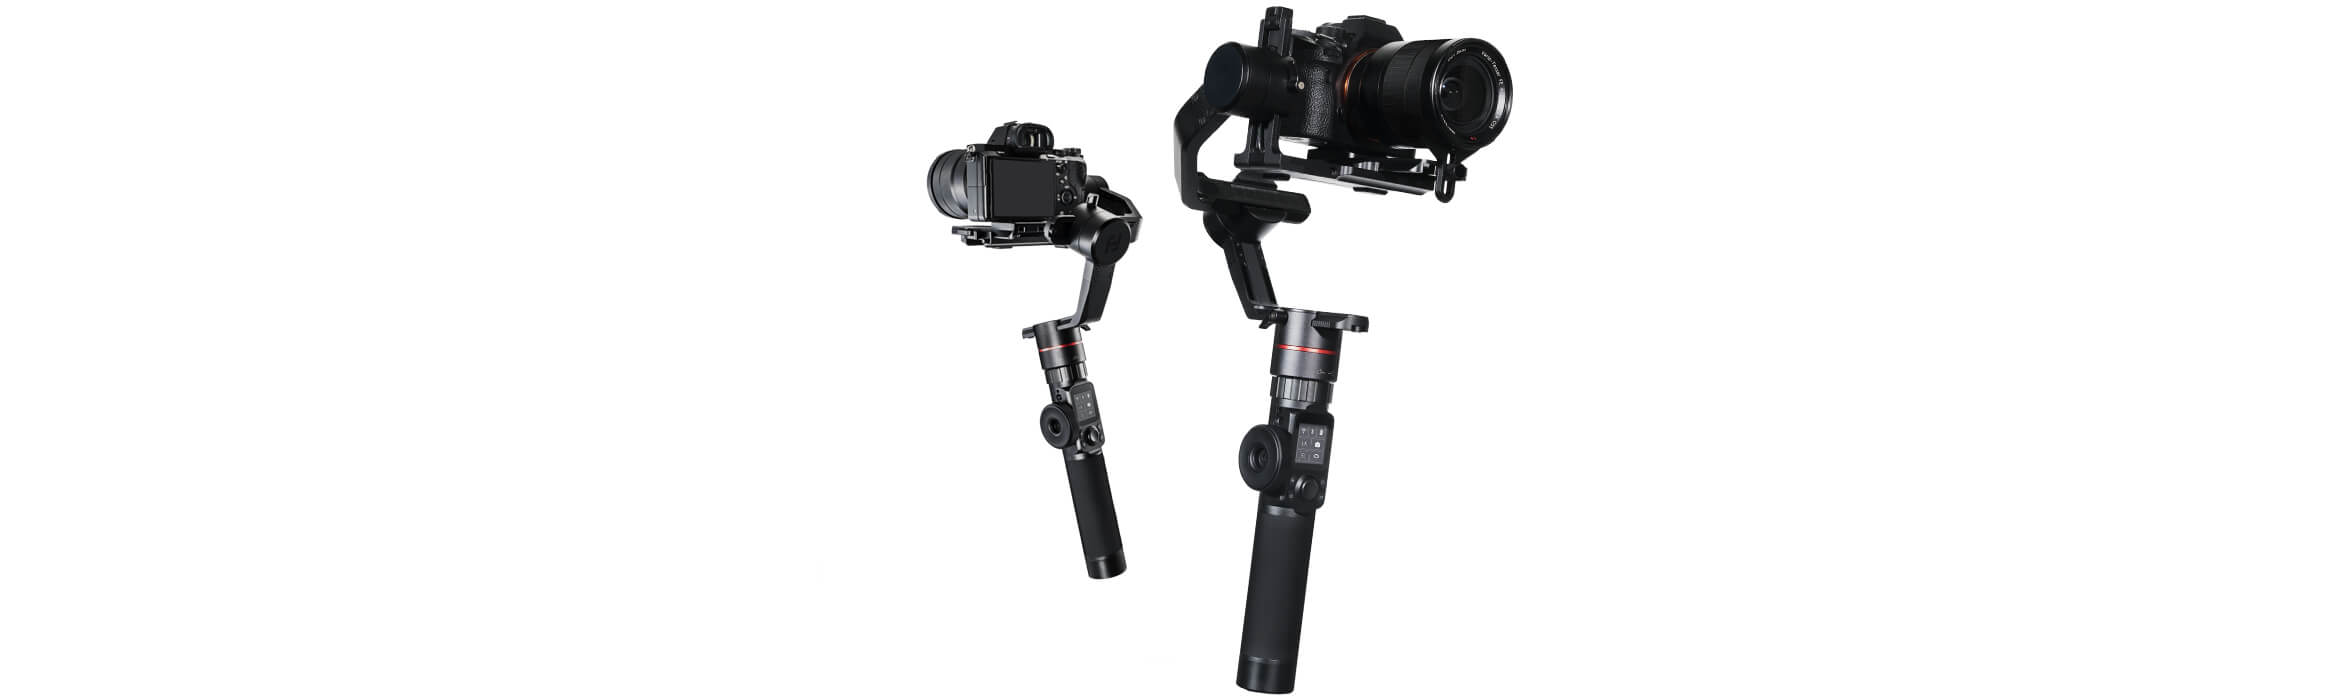 AK2000 Stabilizer for Reflex and Hybrids by Feiyu Tech